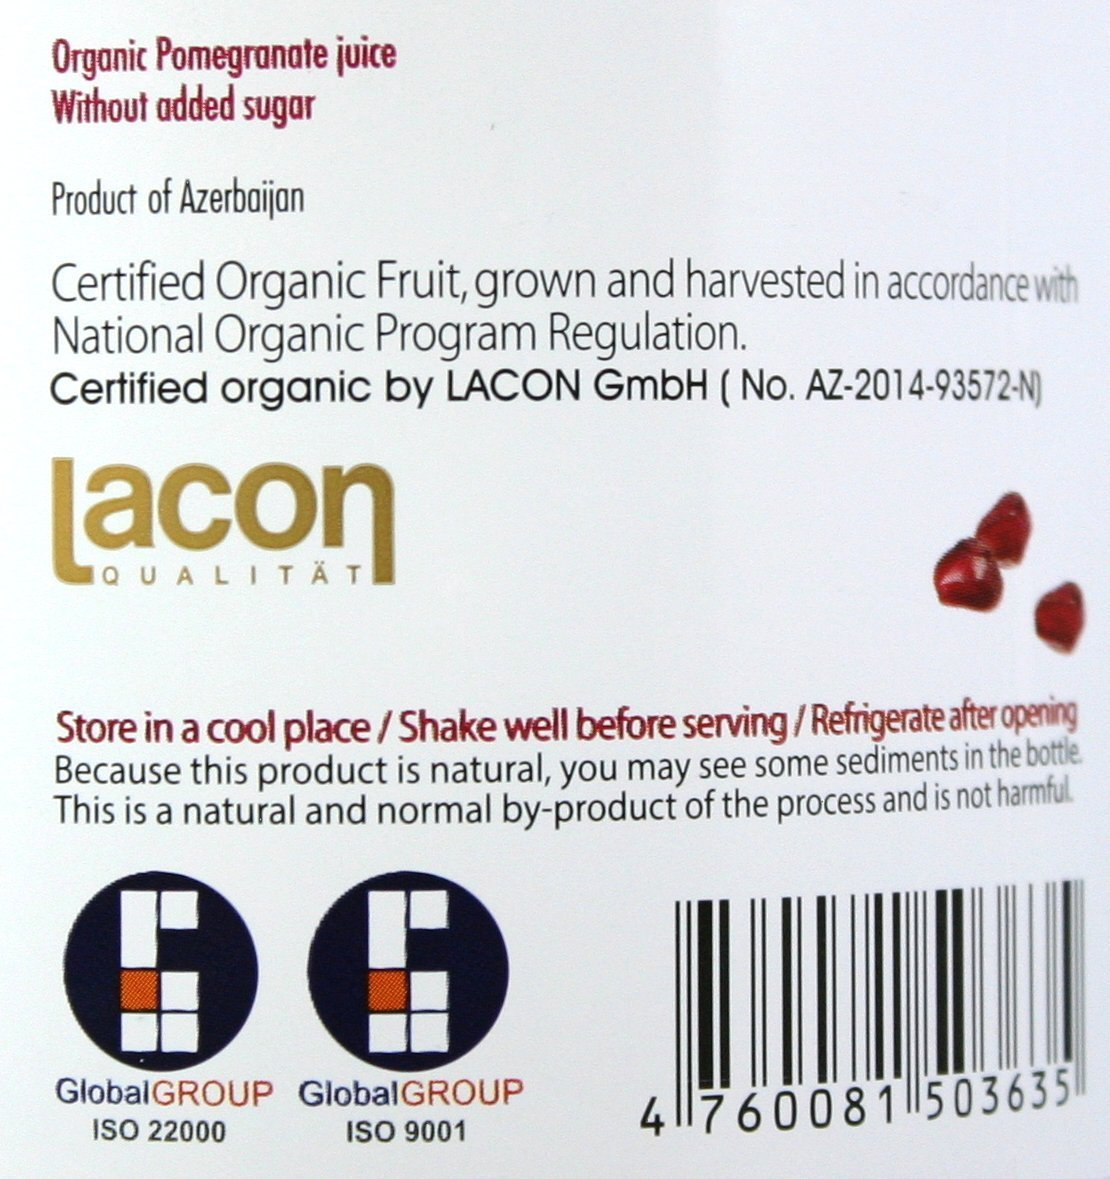 100% Pomegranate Juice - 6 Pack,33.8Fl Oz - USDA Organic Certified - Glass Bottle - No Sugar Added - No Preservatives - Squeezed From Fresh Pomegranates by Blue Ribbon (Image #7)